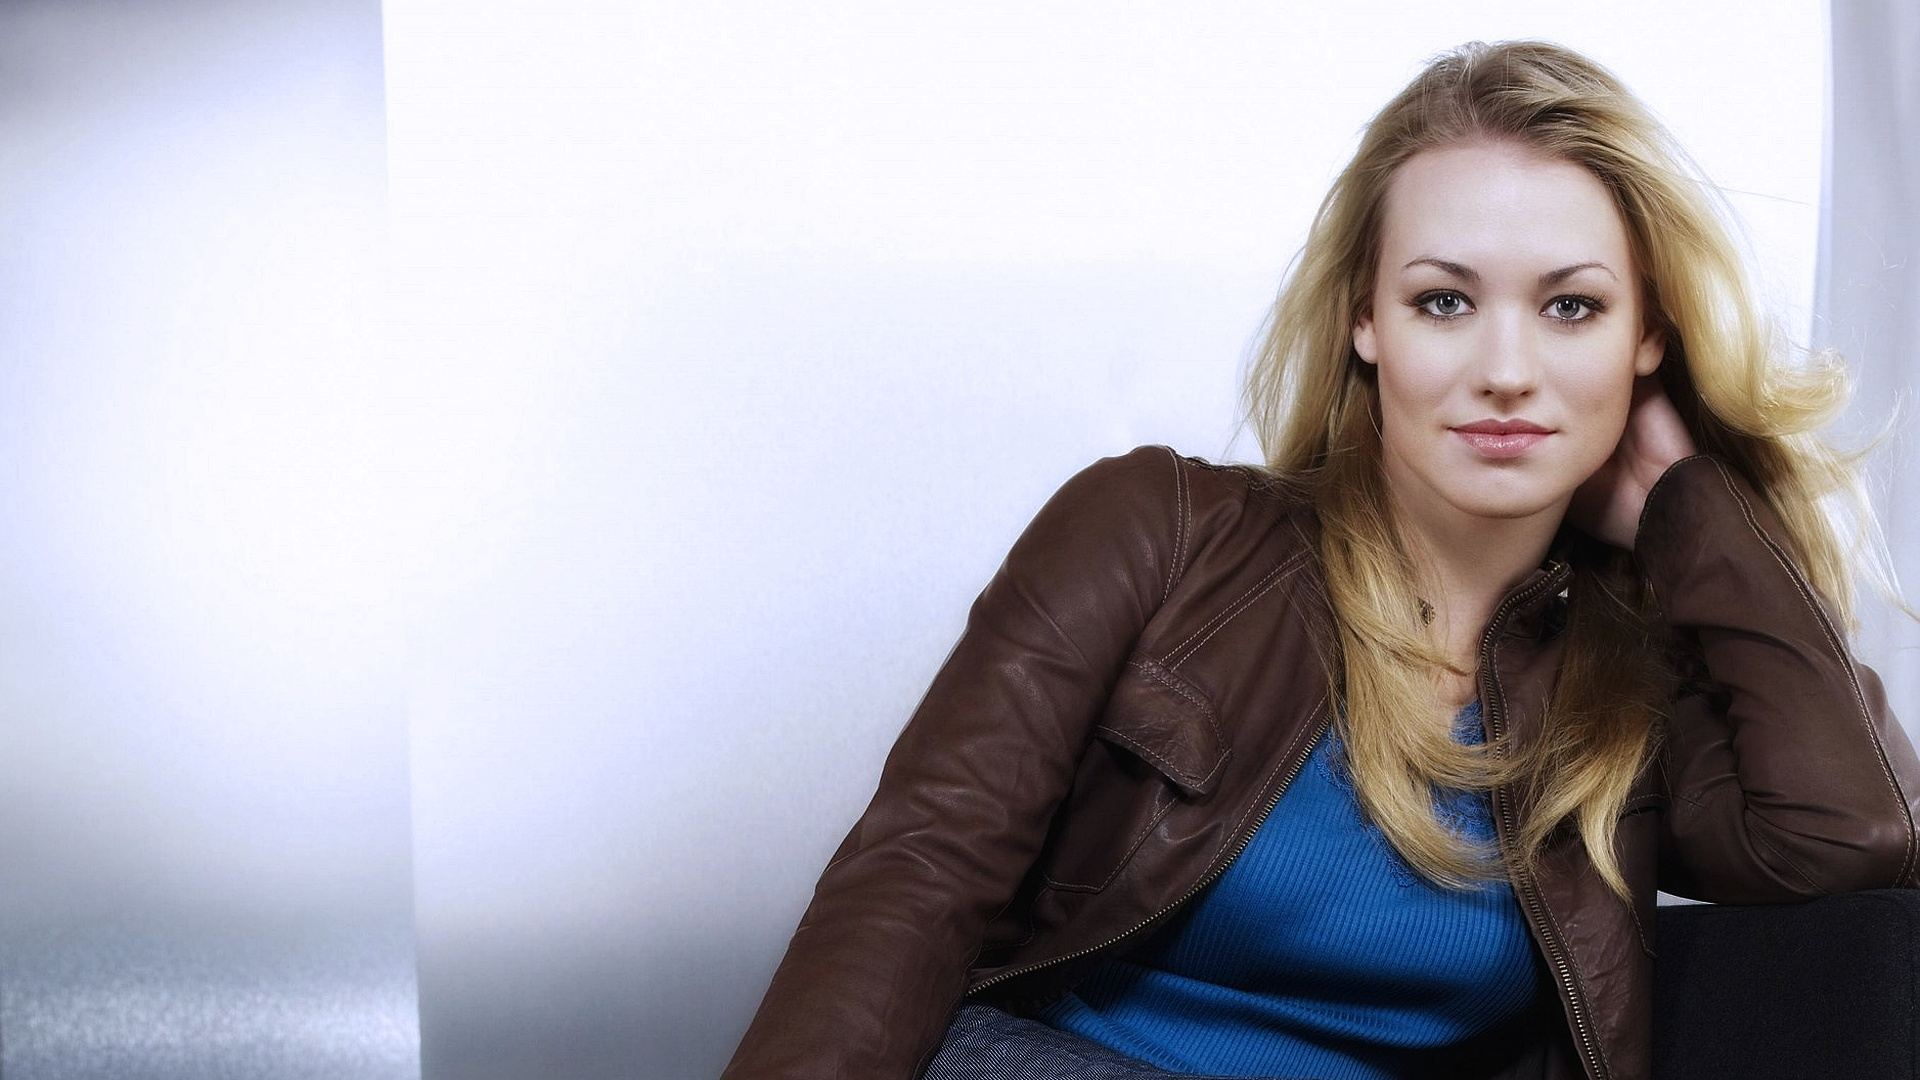 yvonne strahovski hd wallpapers yvonne strahovski hd wallpapers yvonne 1920x1080